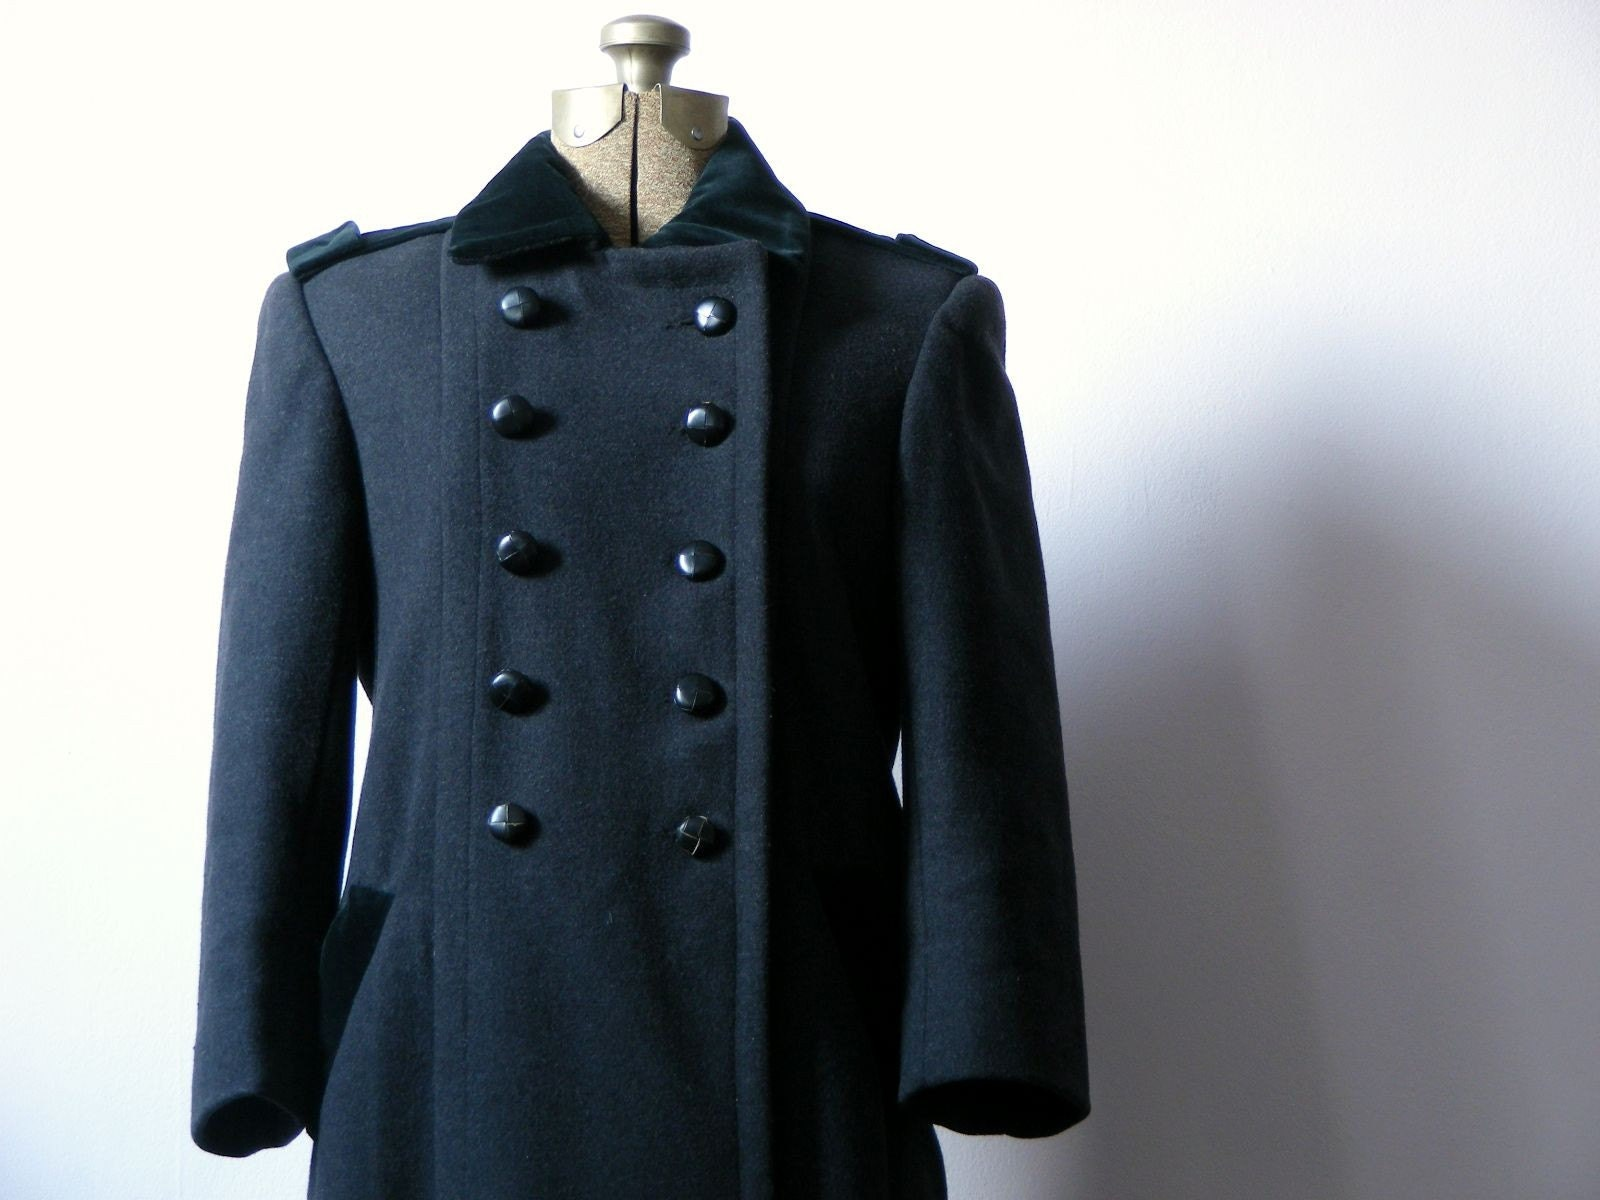 Russian Coat Images - Reverse Search